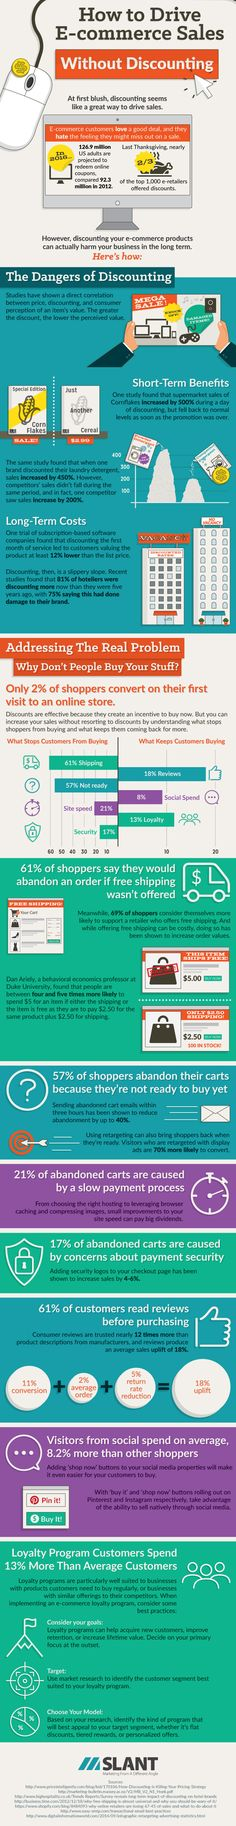 How To Drive E-Commerce Sales #Infographic #HowTo #eCommerce